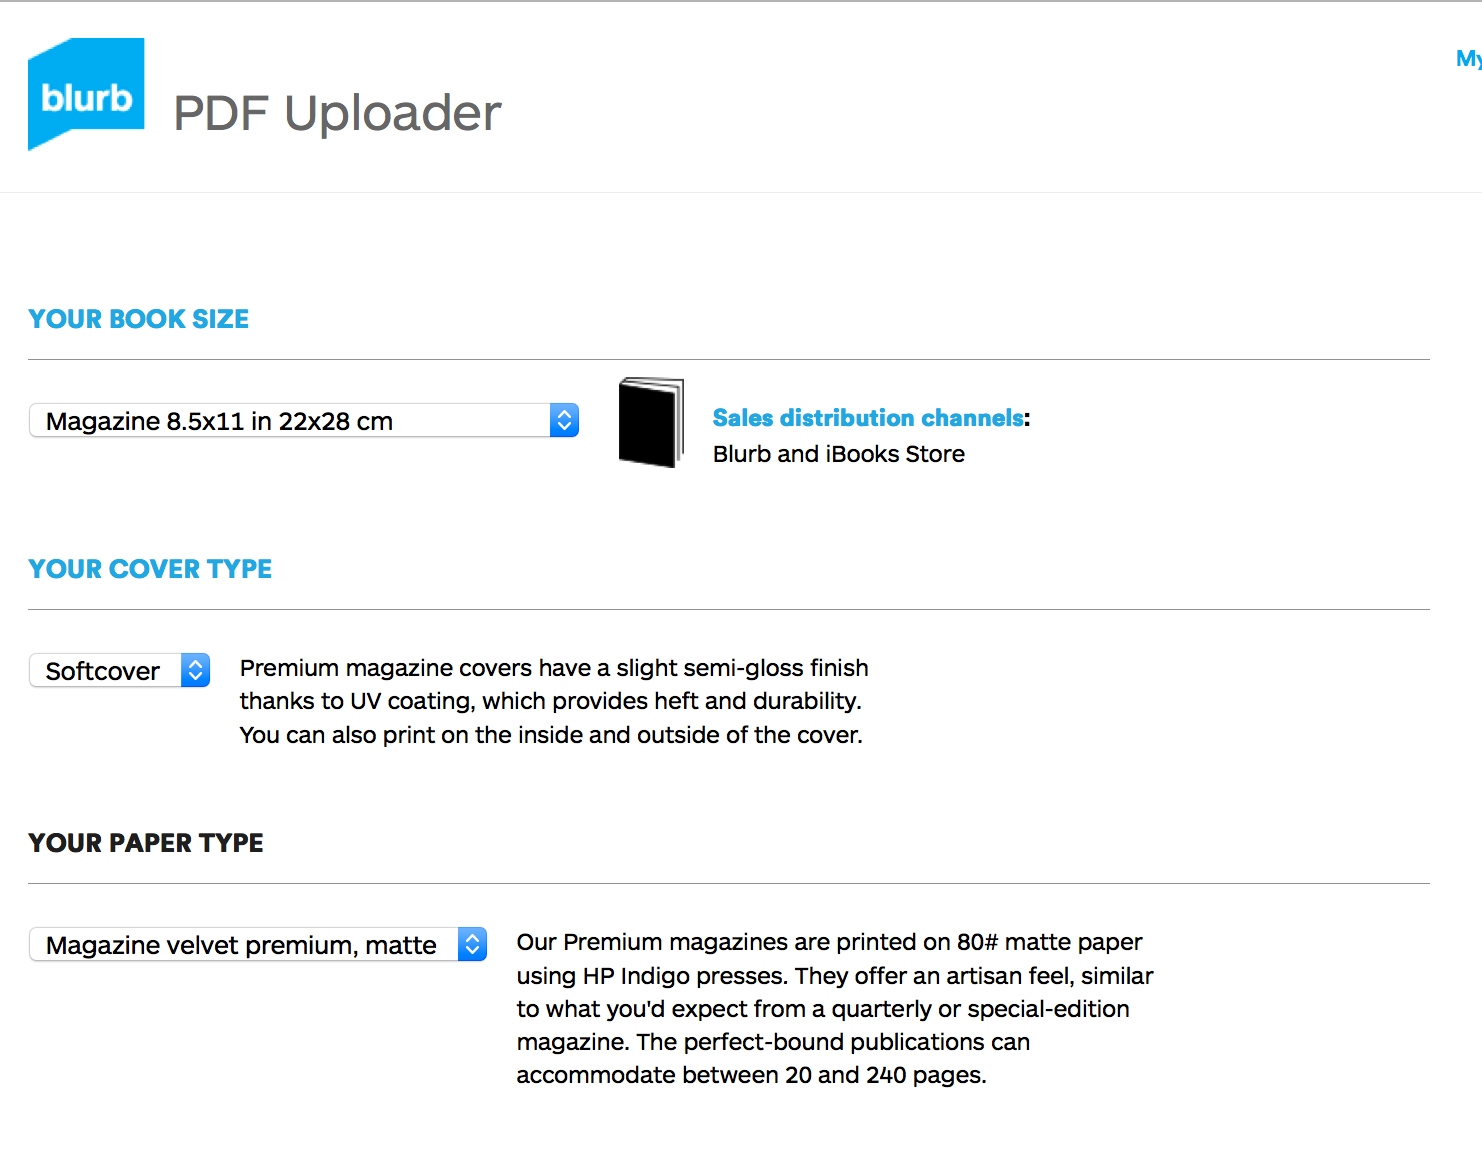 have a pdf just upload and publish blurb blog